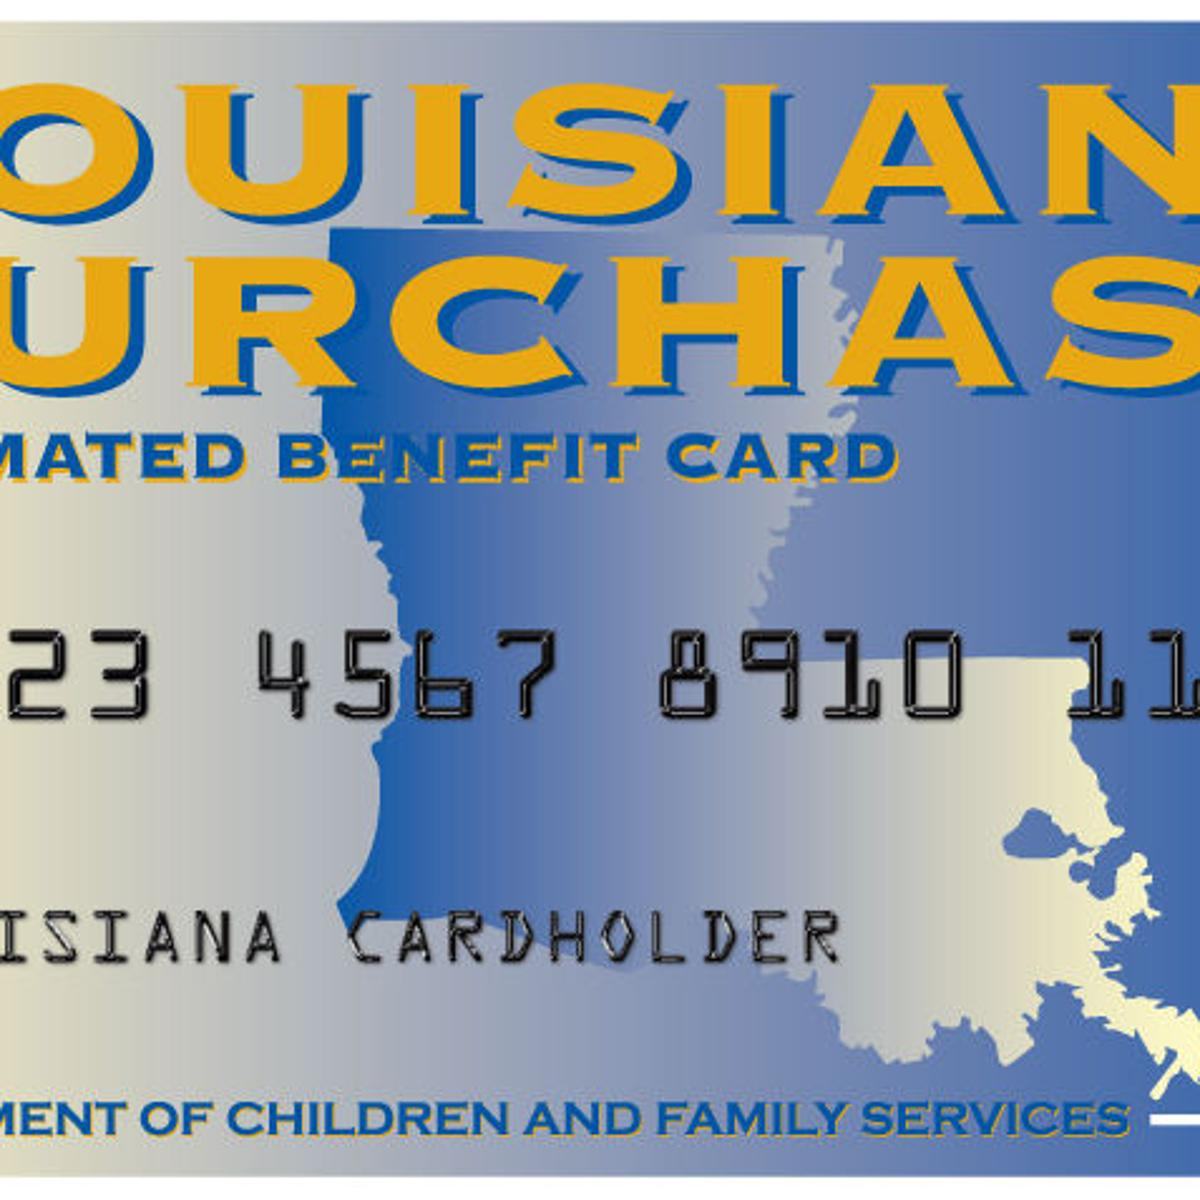 If you receive food stamps in Louisiana, heads up: April